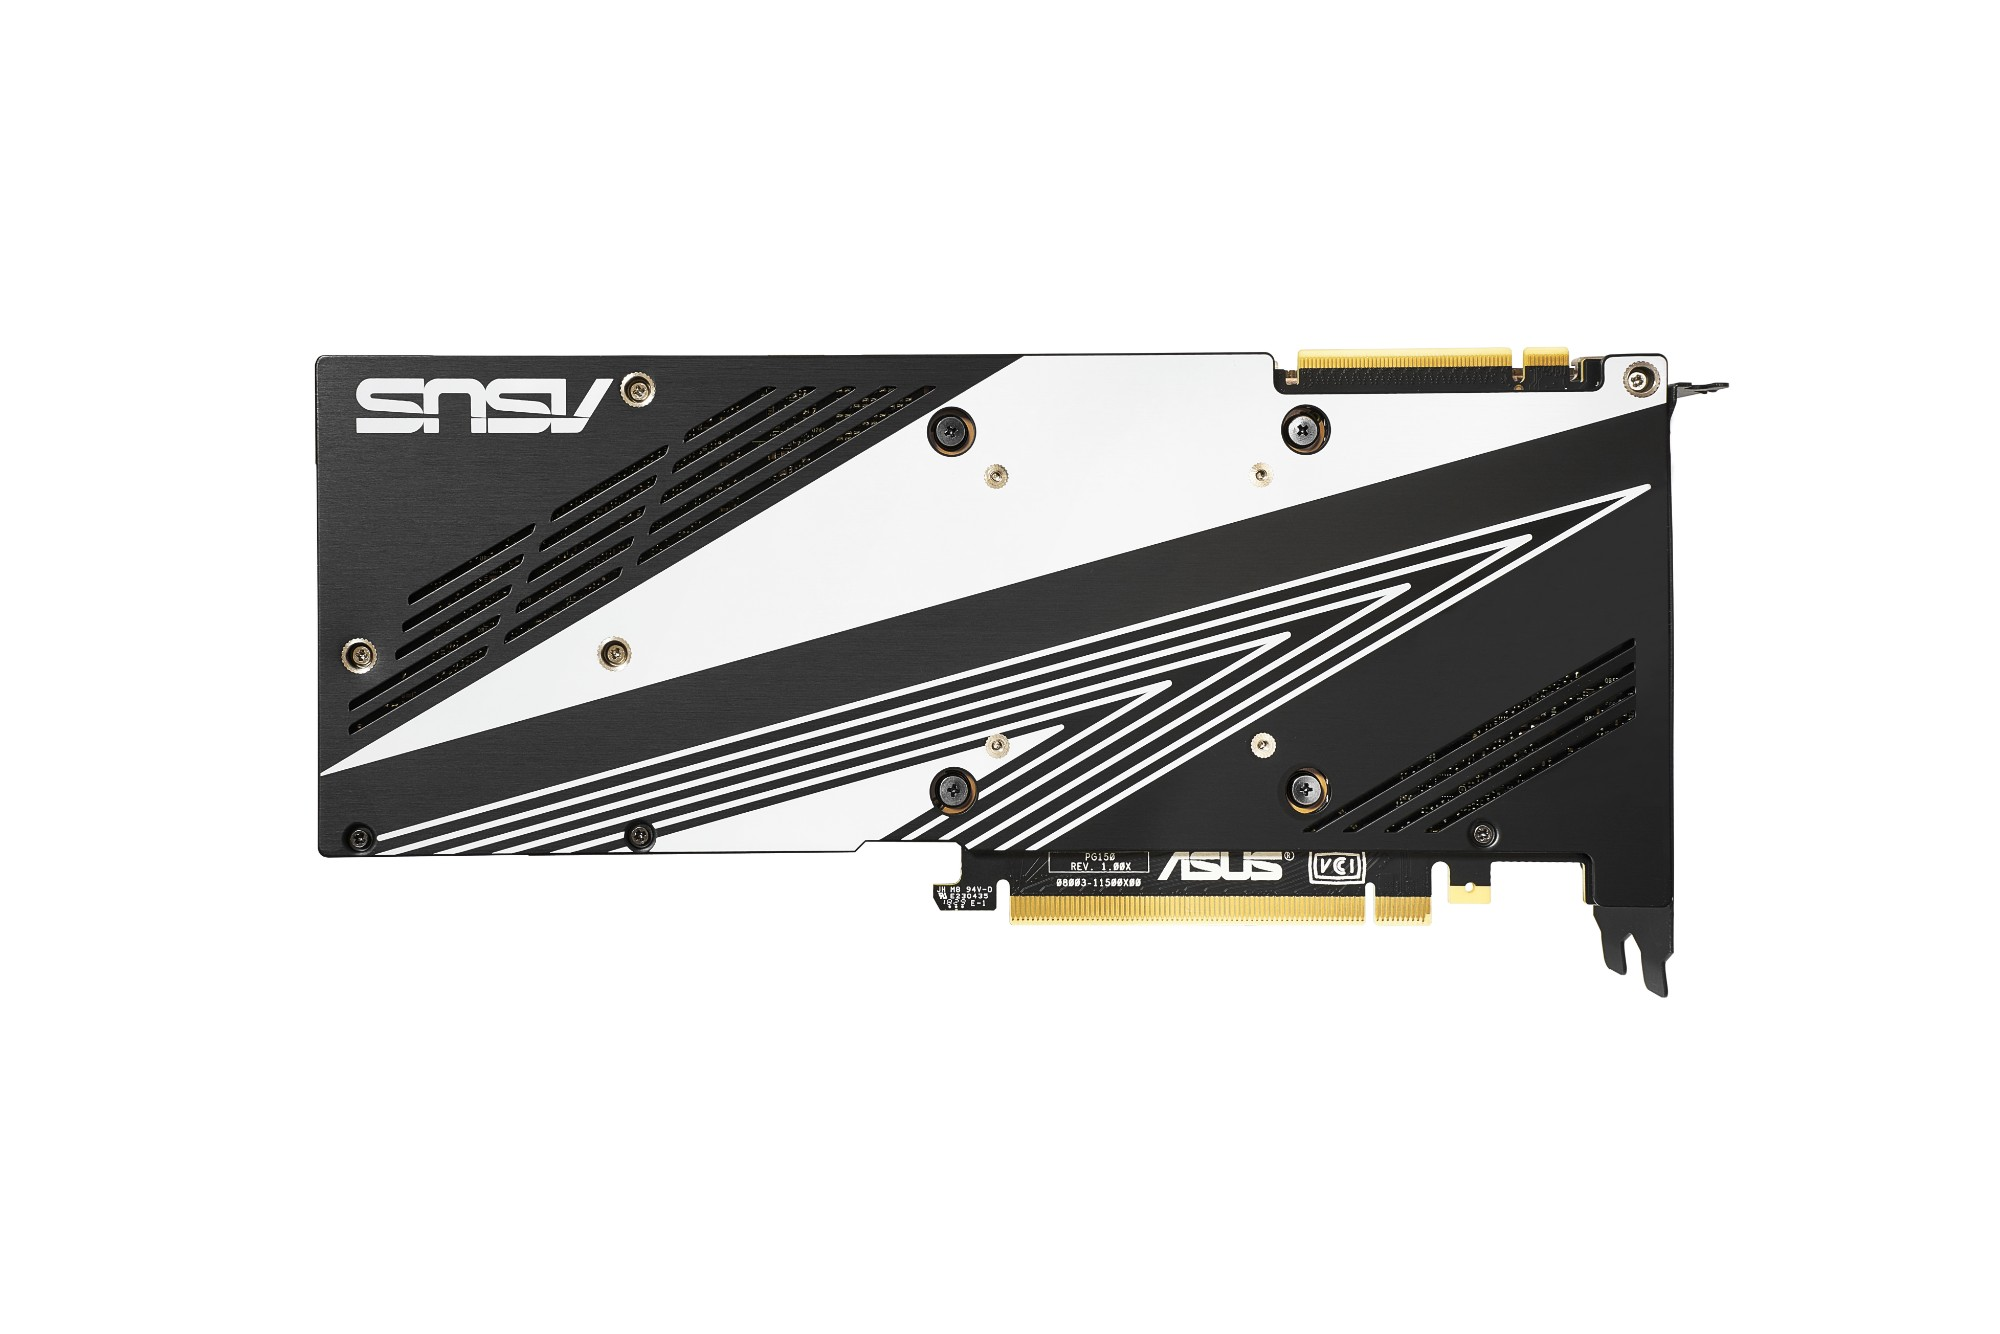 ASUS DUAL-RTX2080TI-11G graphics card GeForce RTX 2080 Ti 11 GB GDDR6